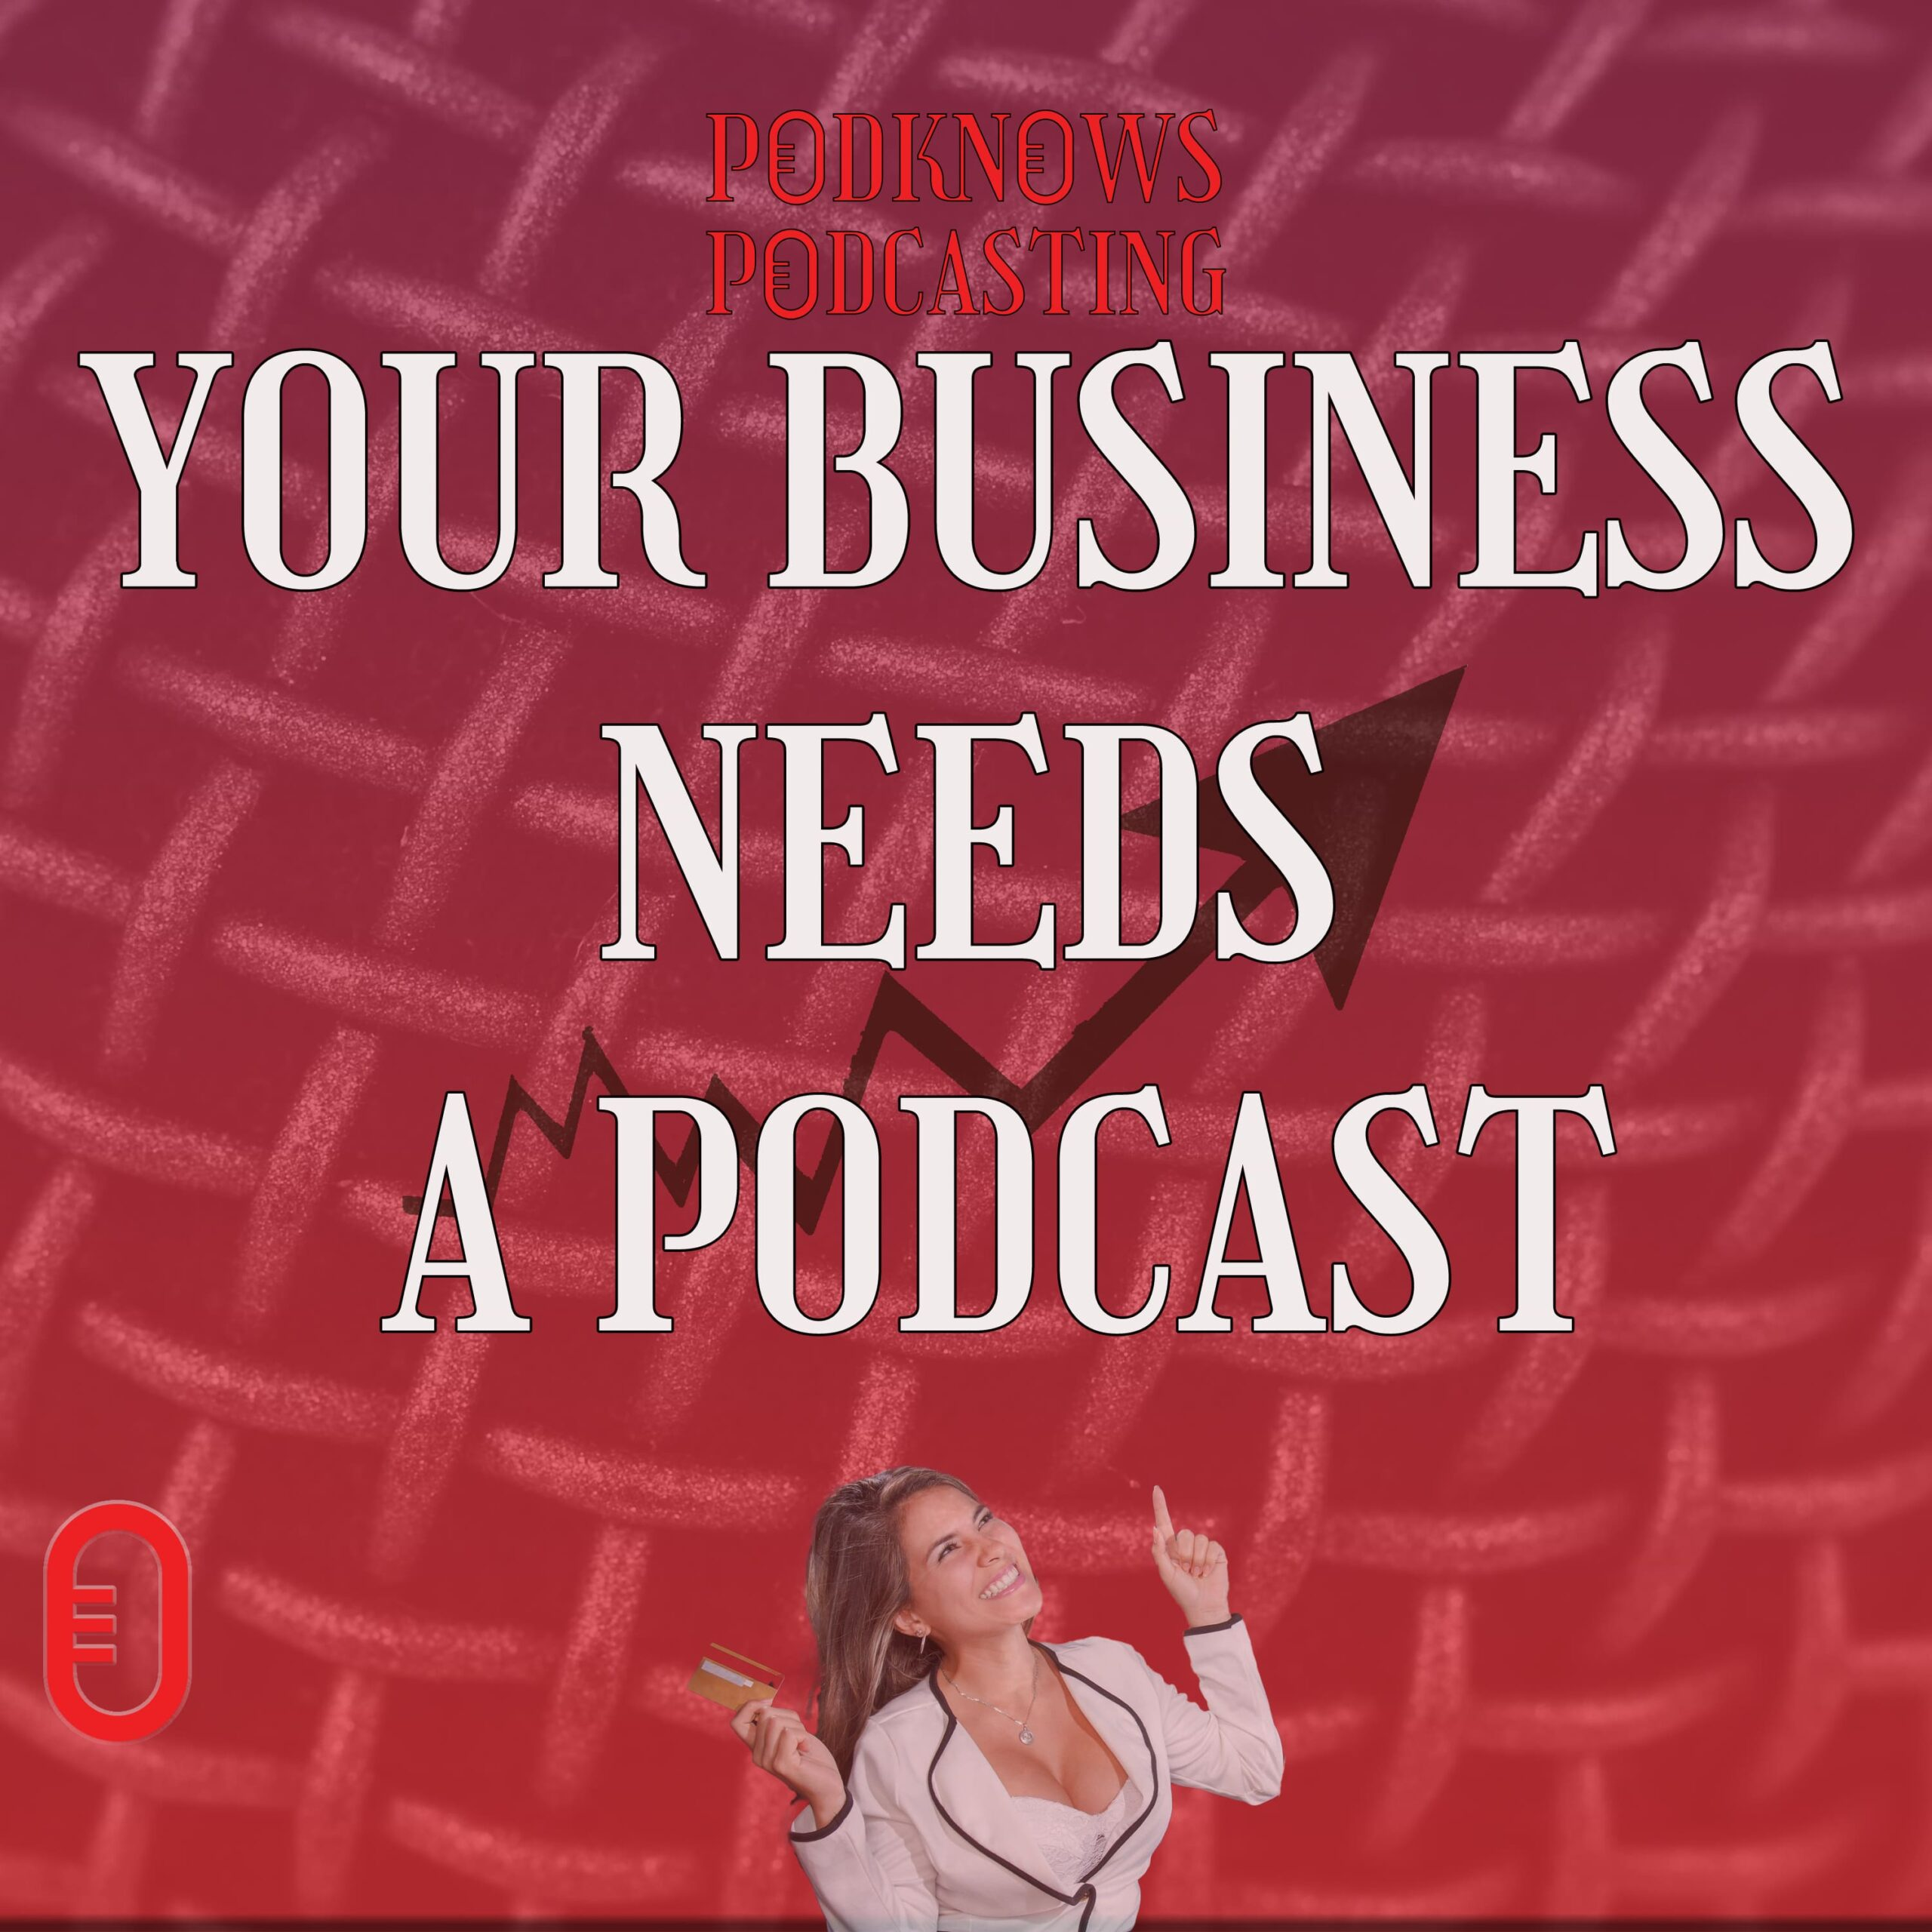 Podcasting Advice For Business Owners